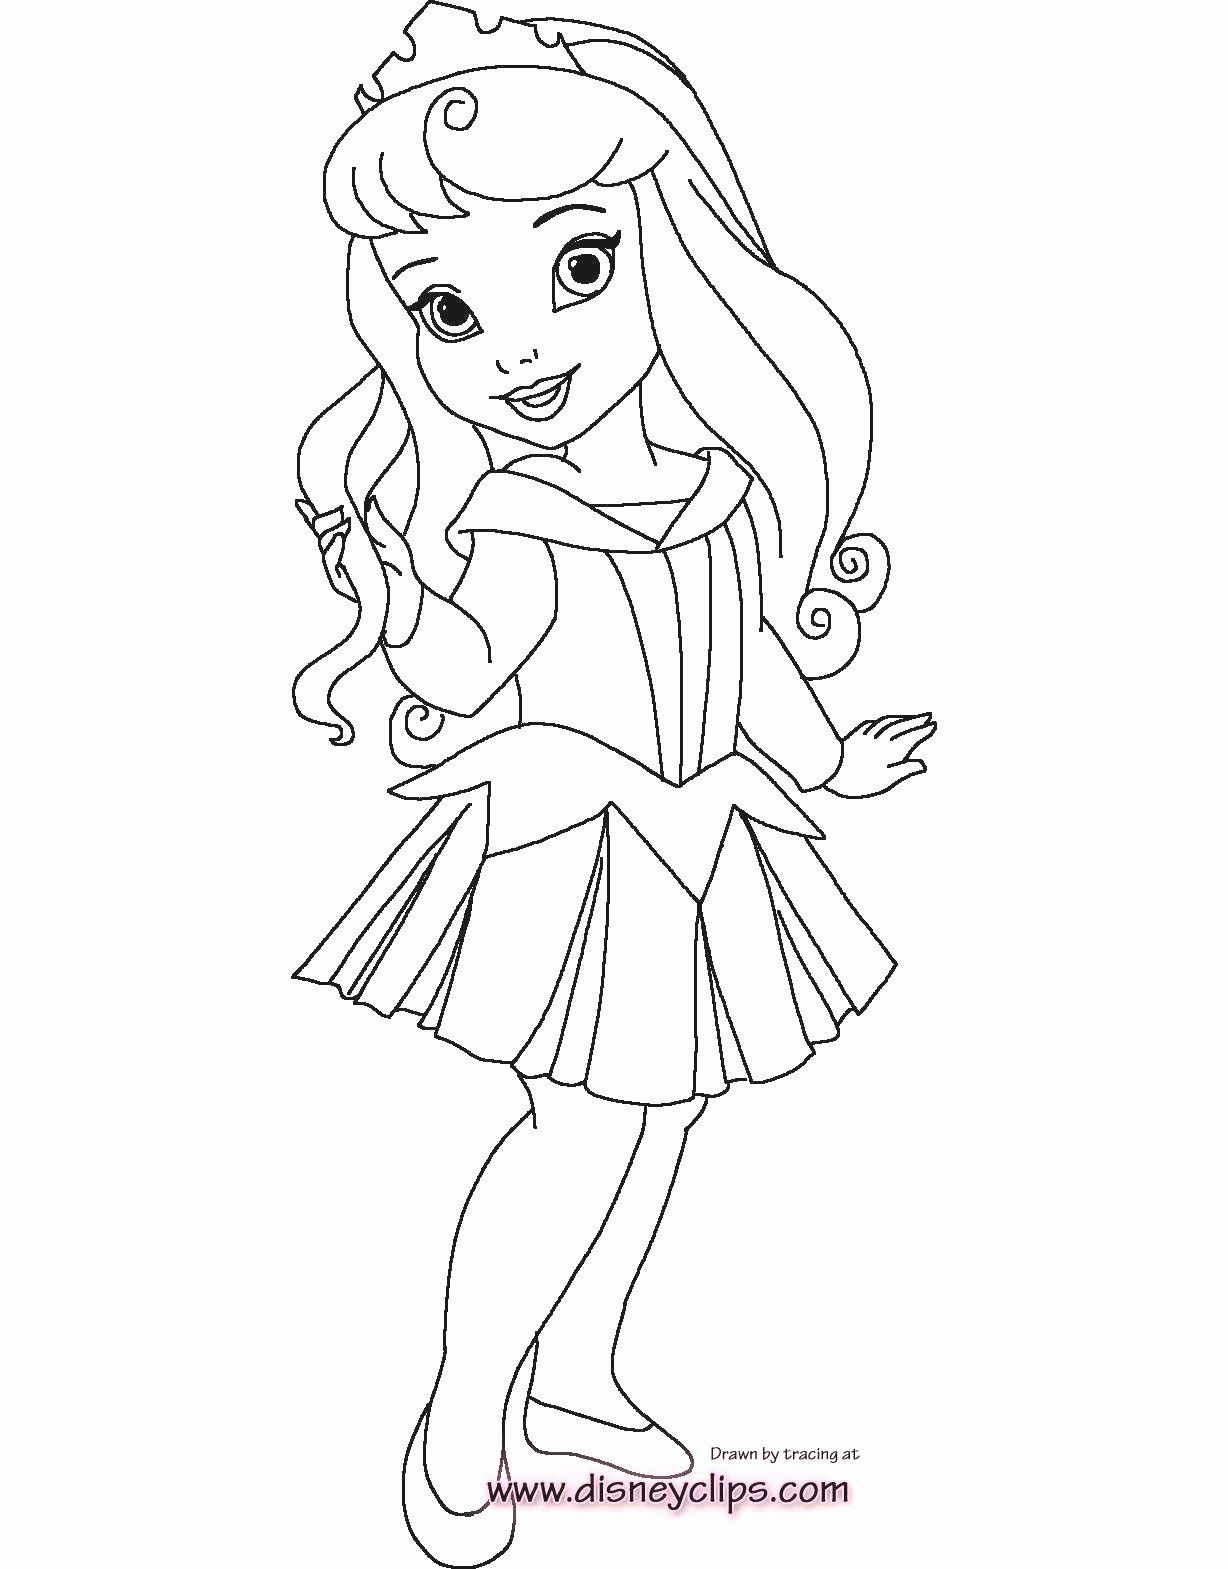 Disney Coloring Pages Ariel   Colectivi Coloring in 2020 ...